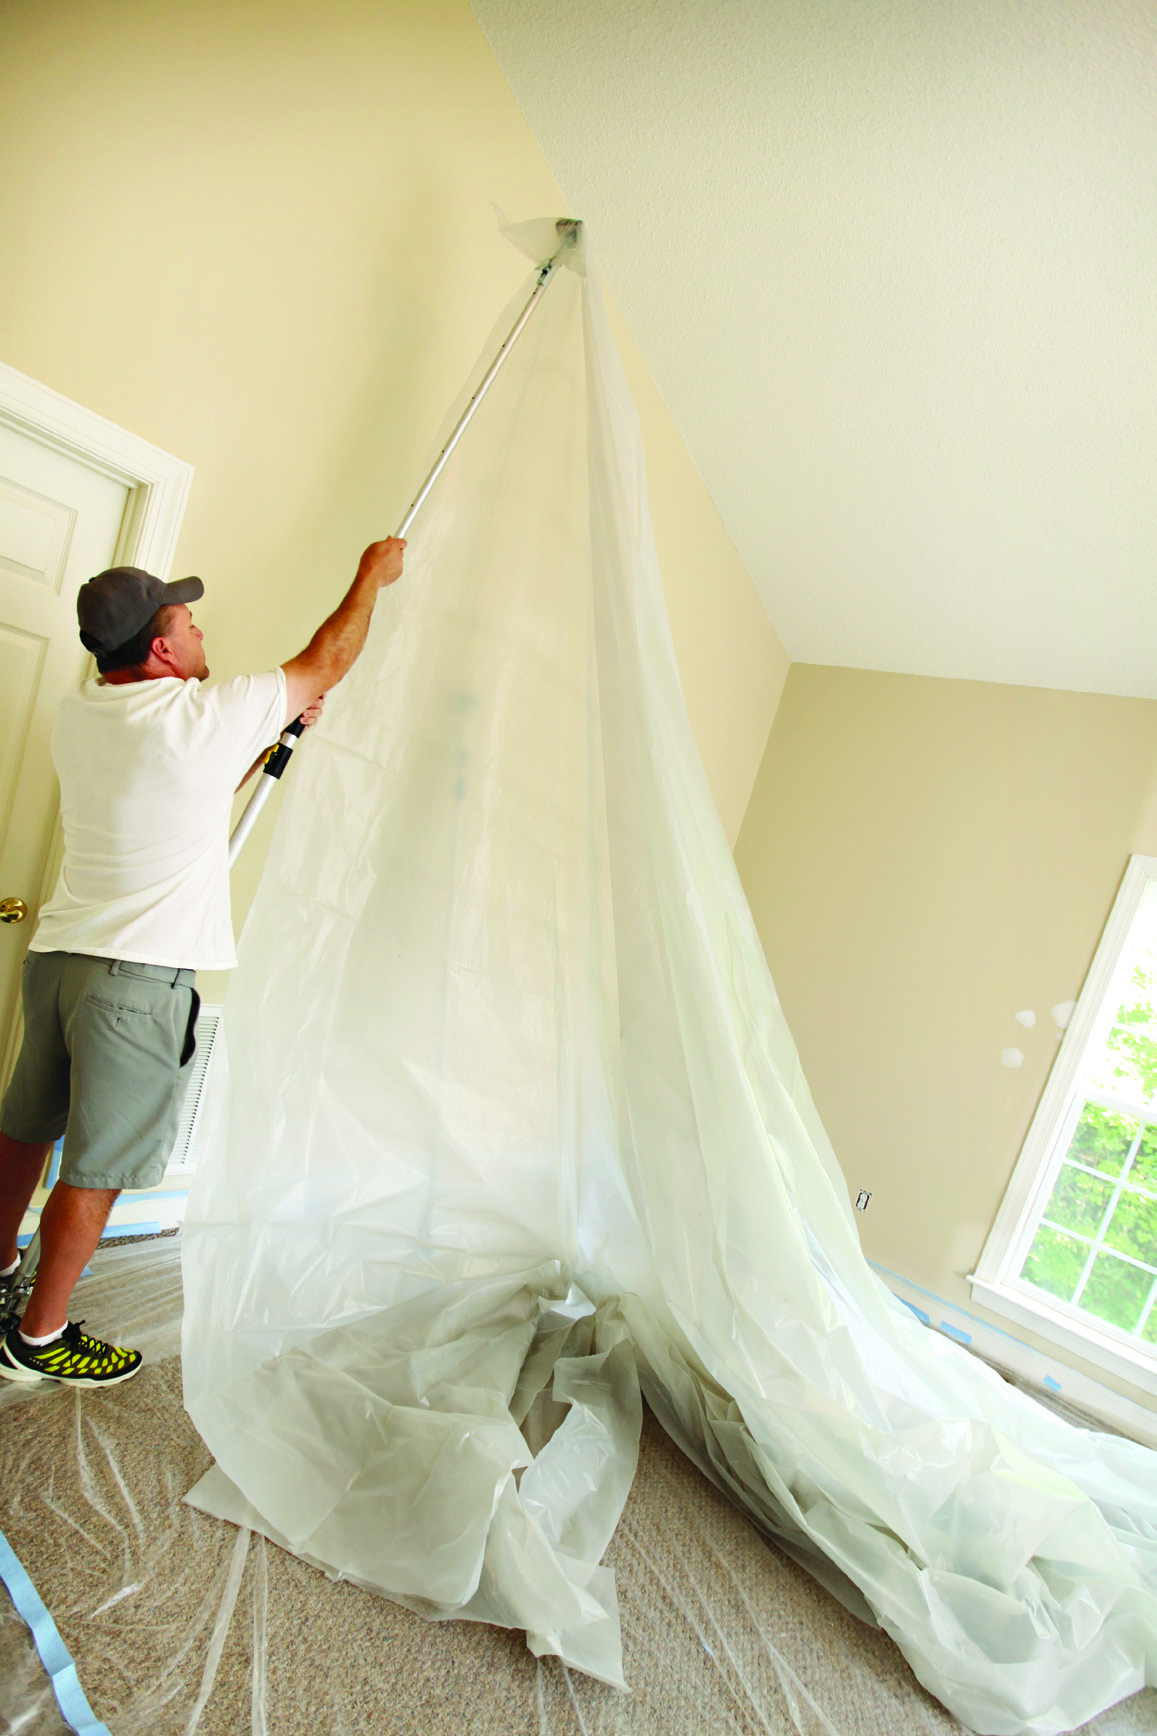 Prepare Your Next Paint Project Like A Pro Extreme How